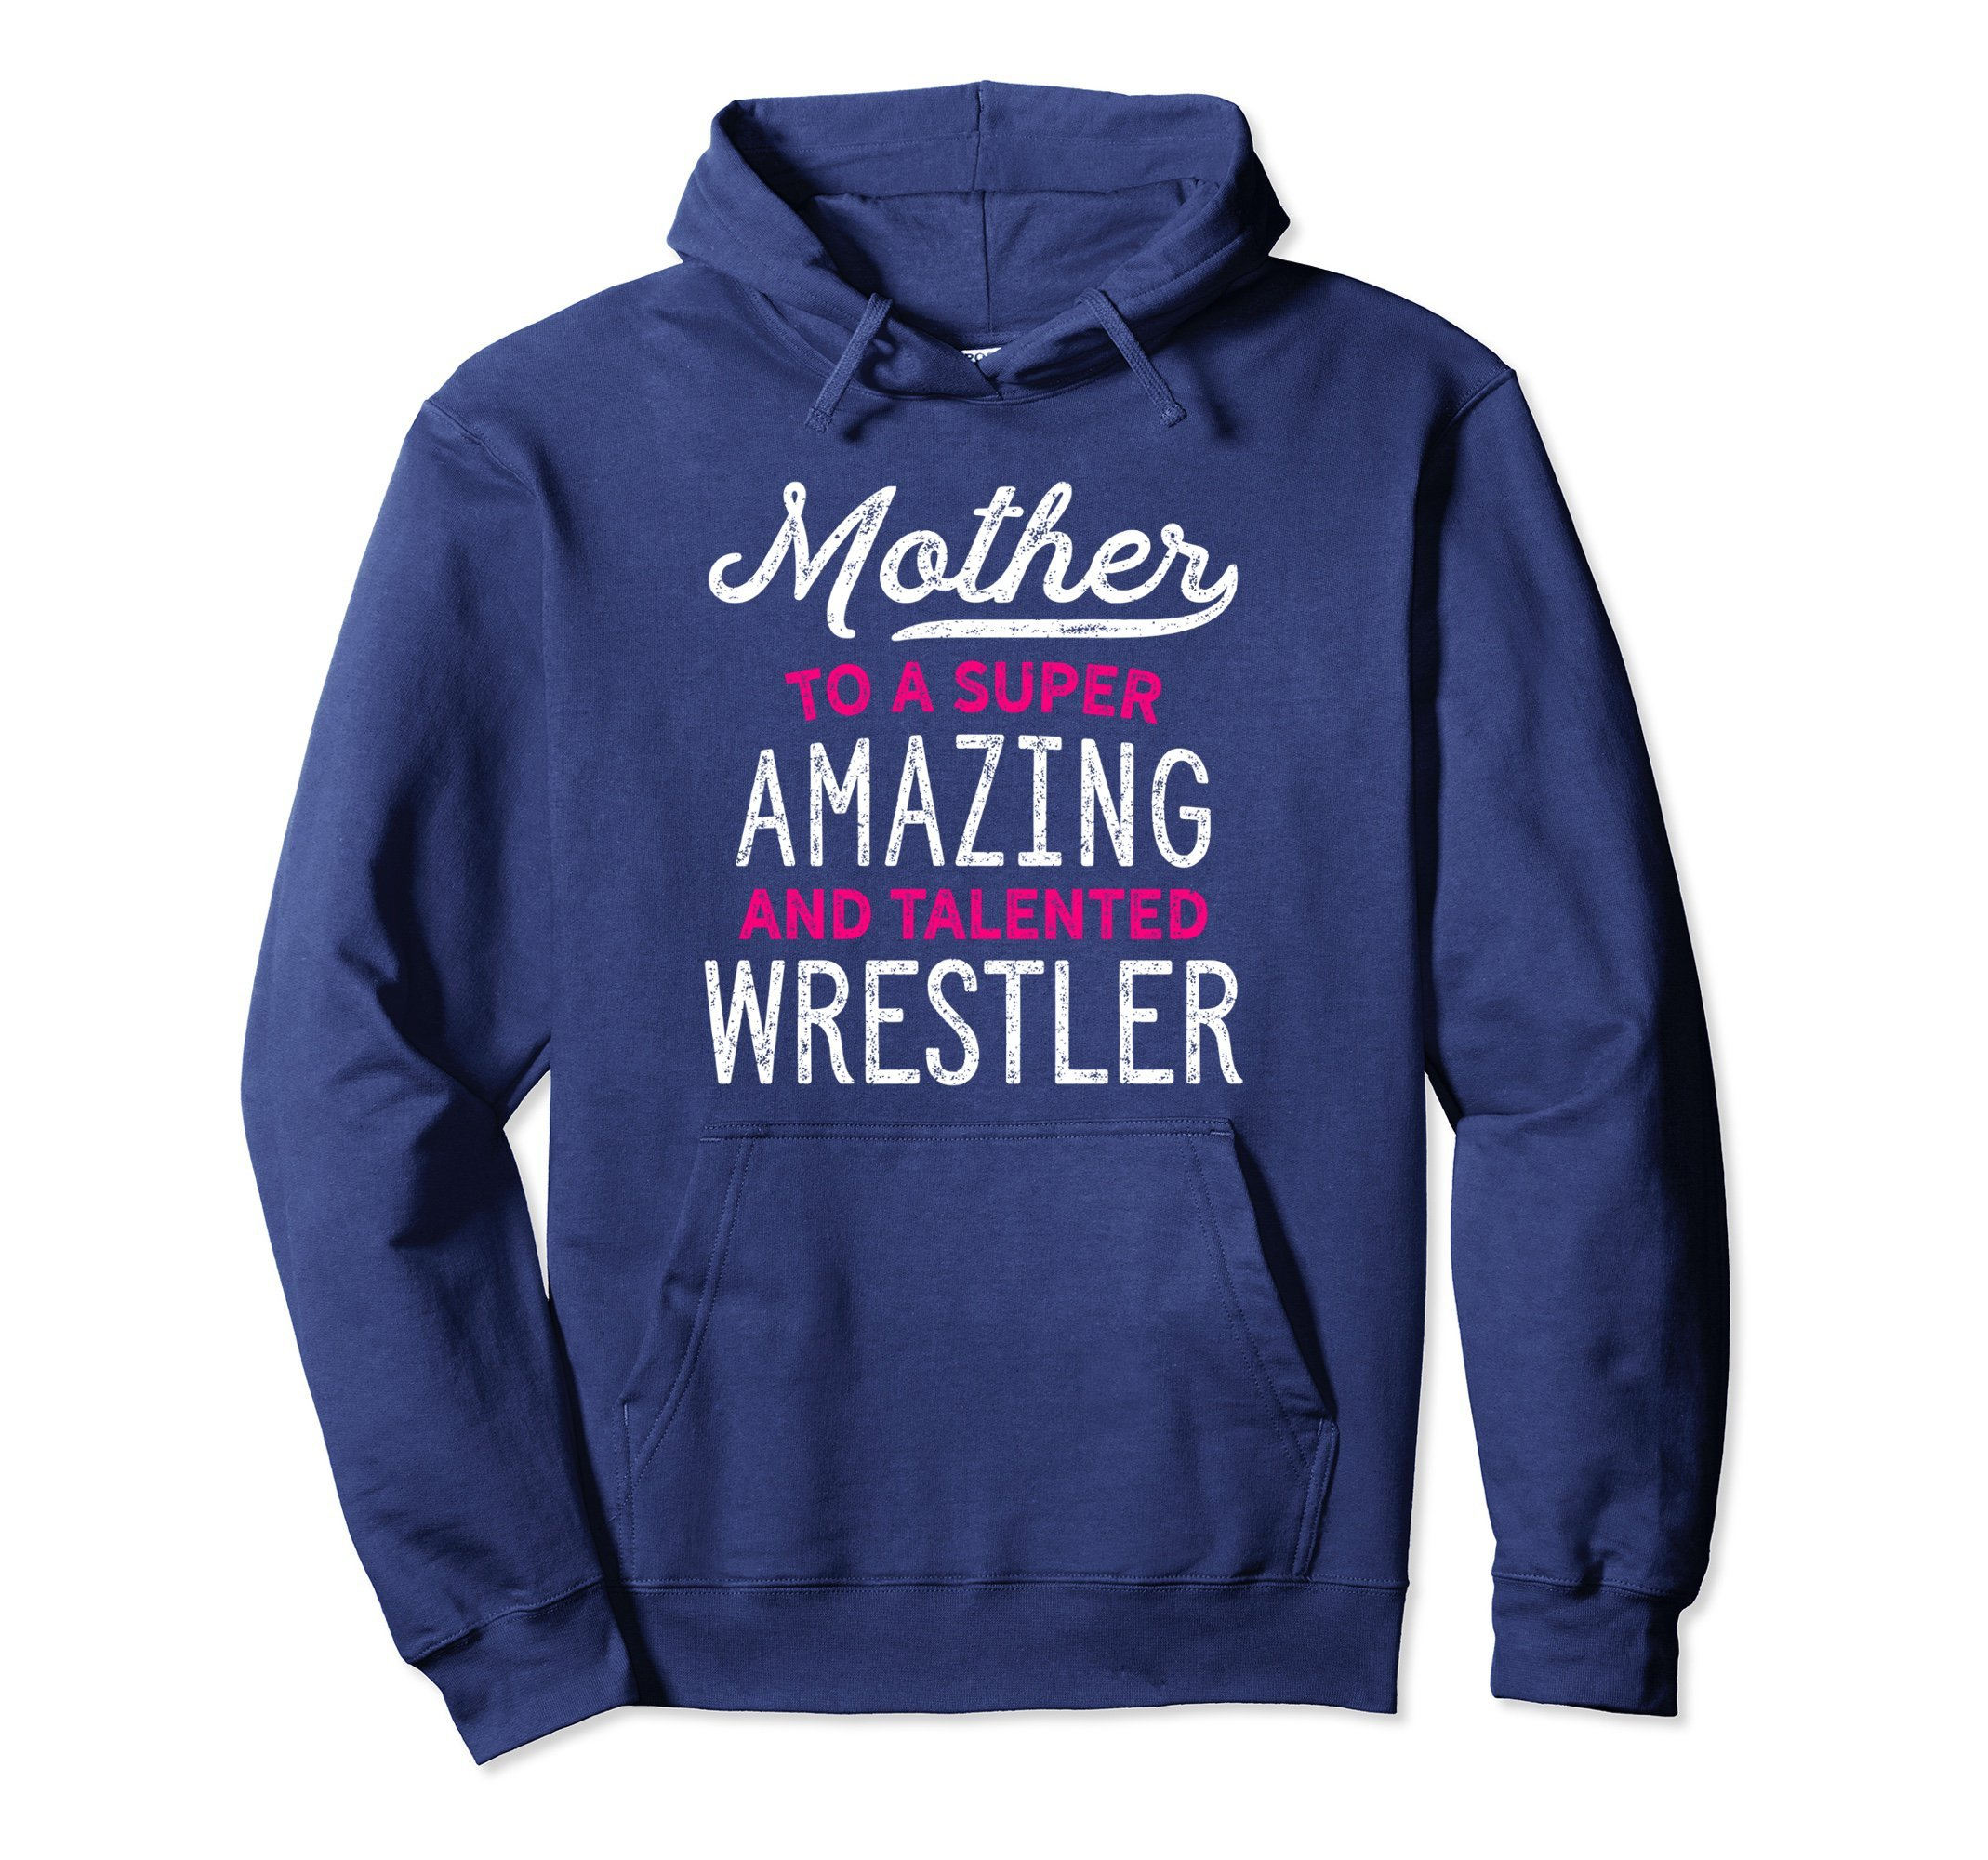 Unisex Wrestling Mother Hoodie for Wrestle Moms, Cute Gift, Pink 2XL Navy